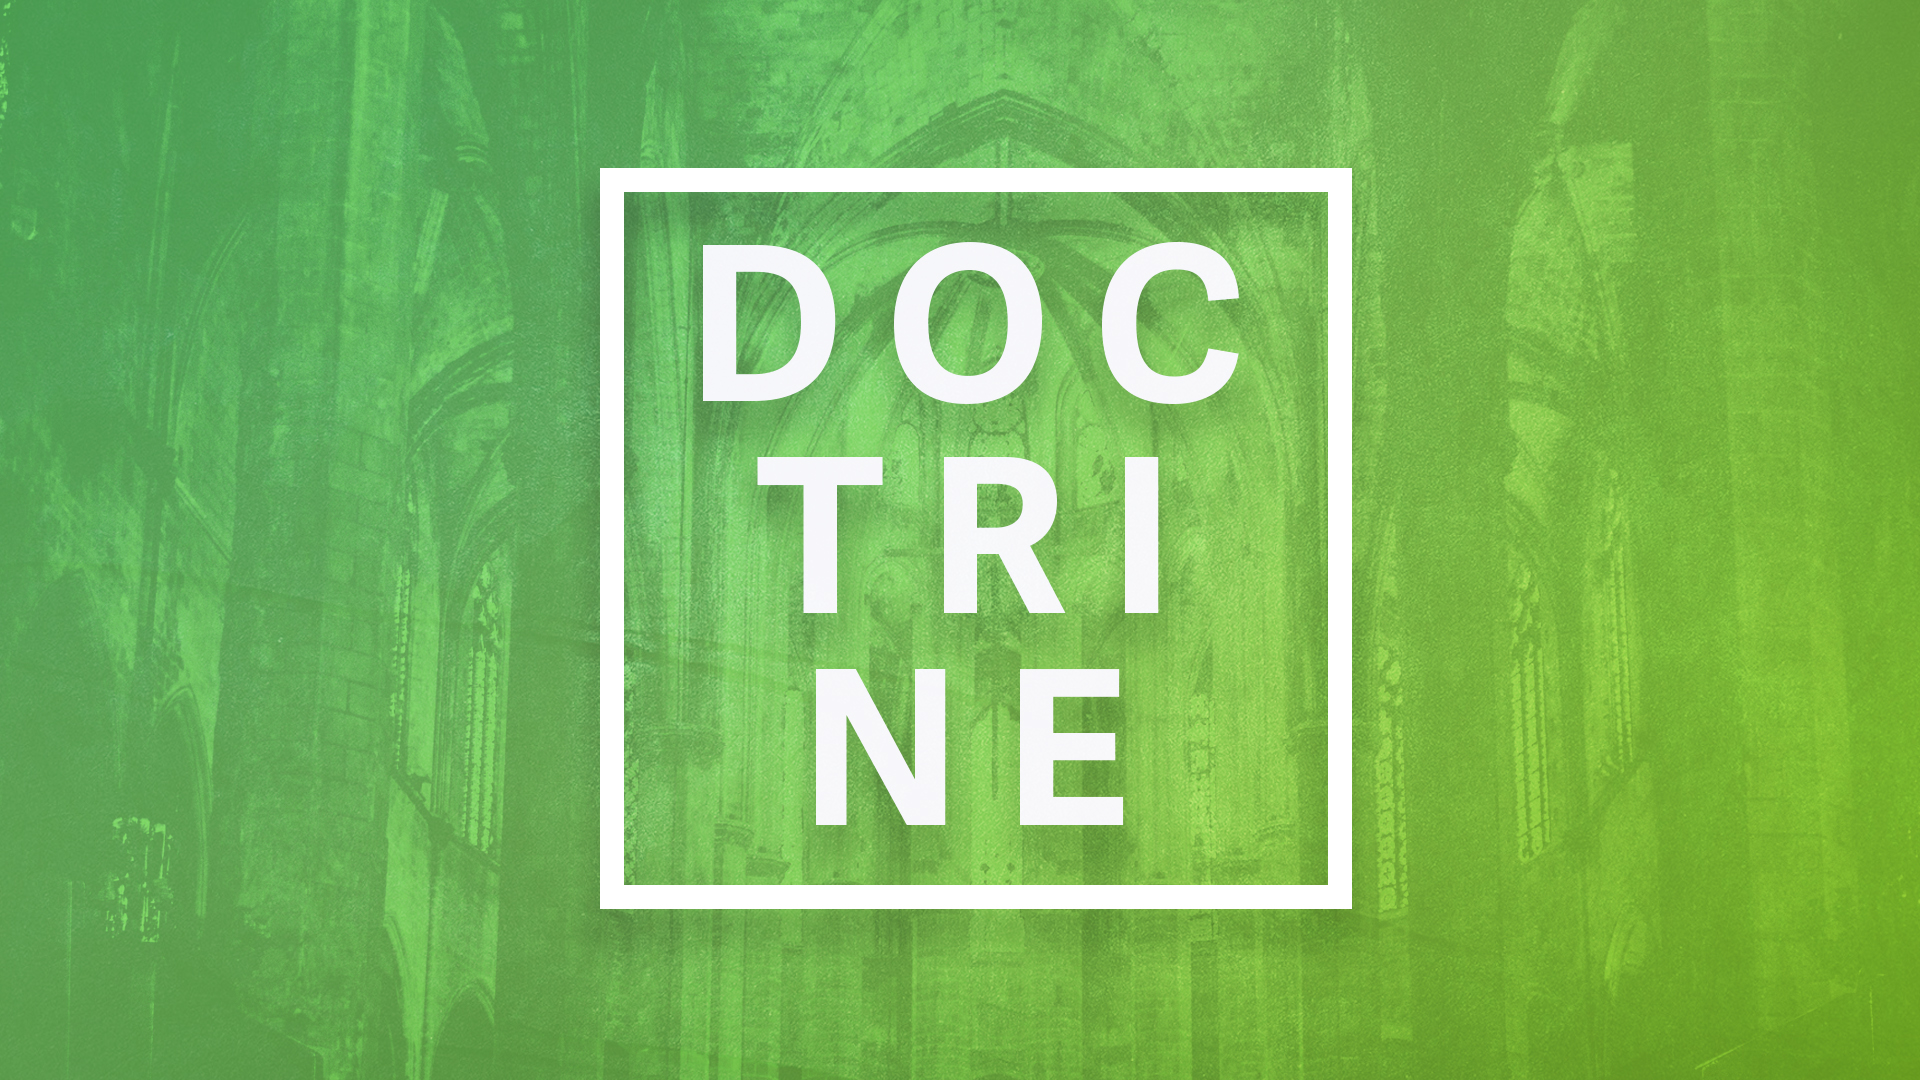 Doctrine image